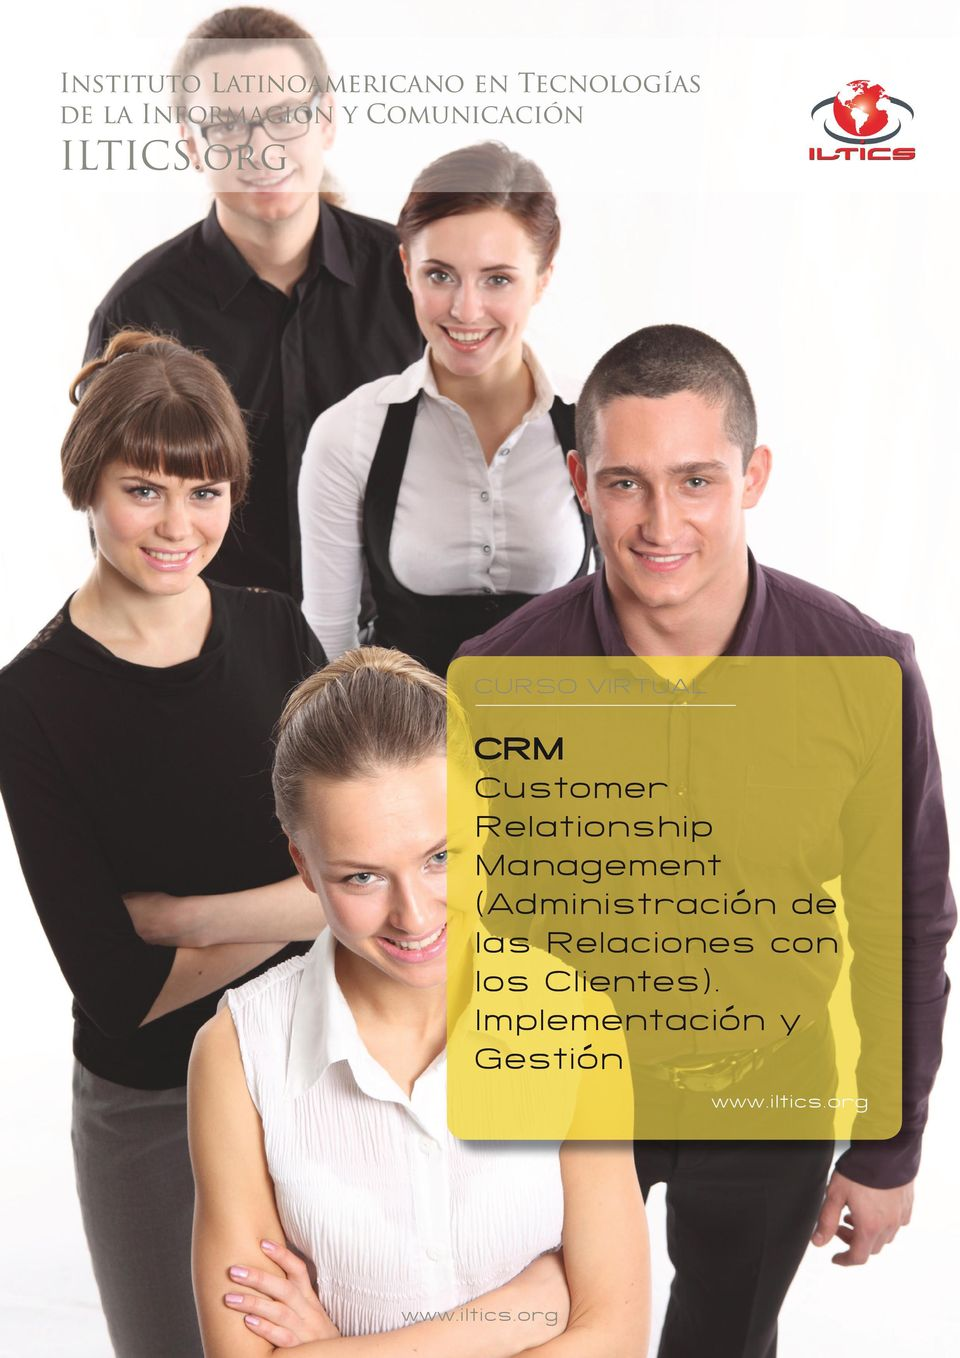 org CURSO VIRTUAL CRM Customer Relationship Management